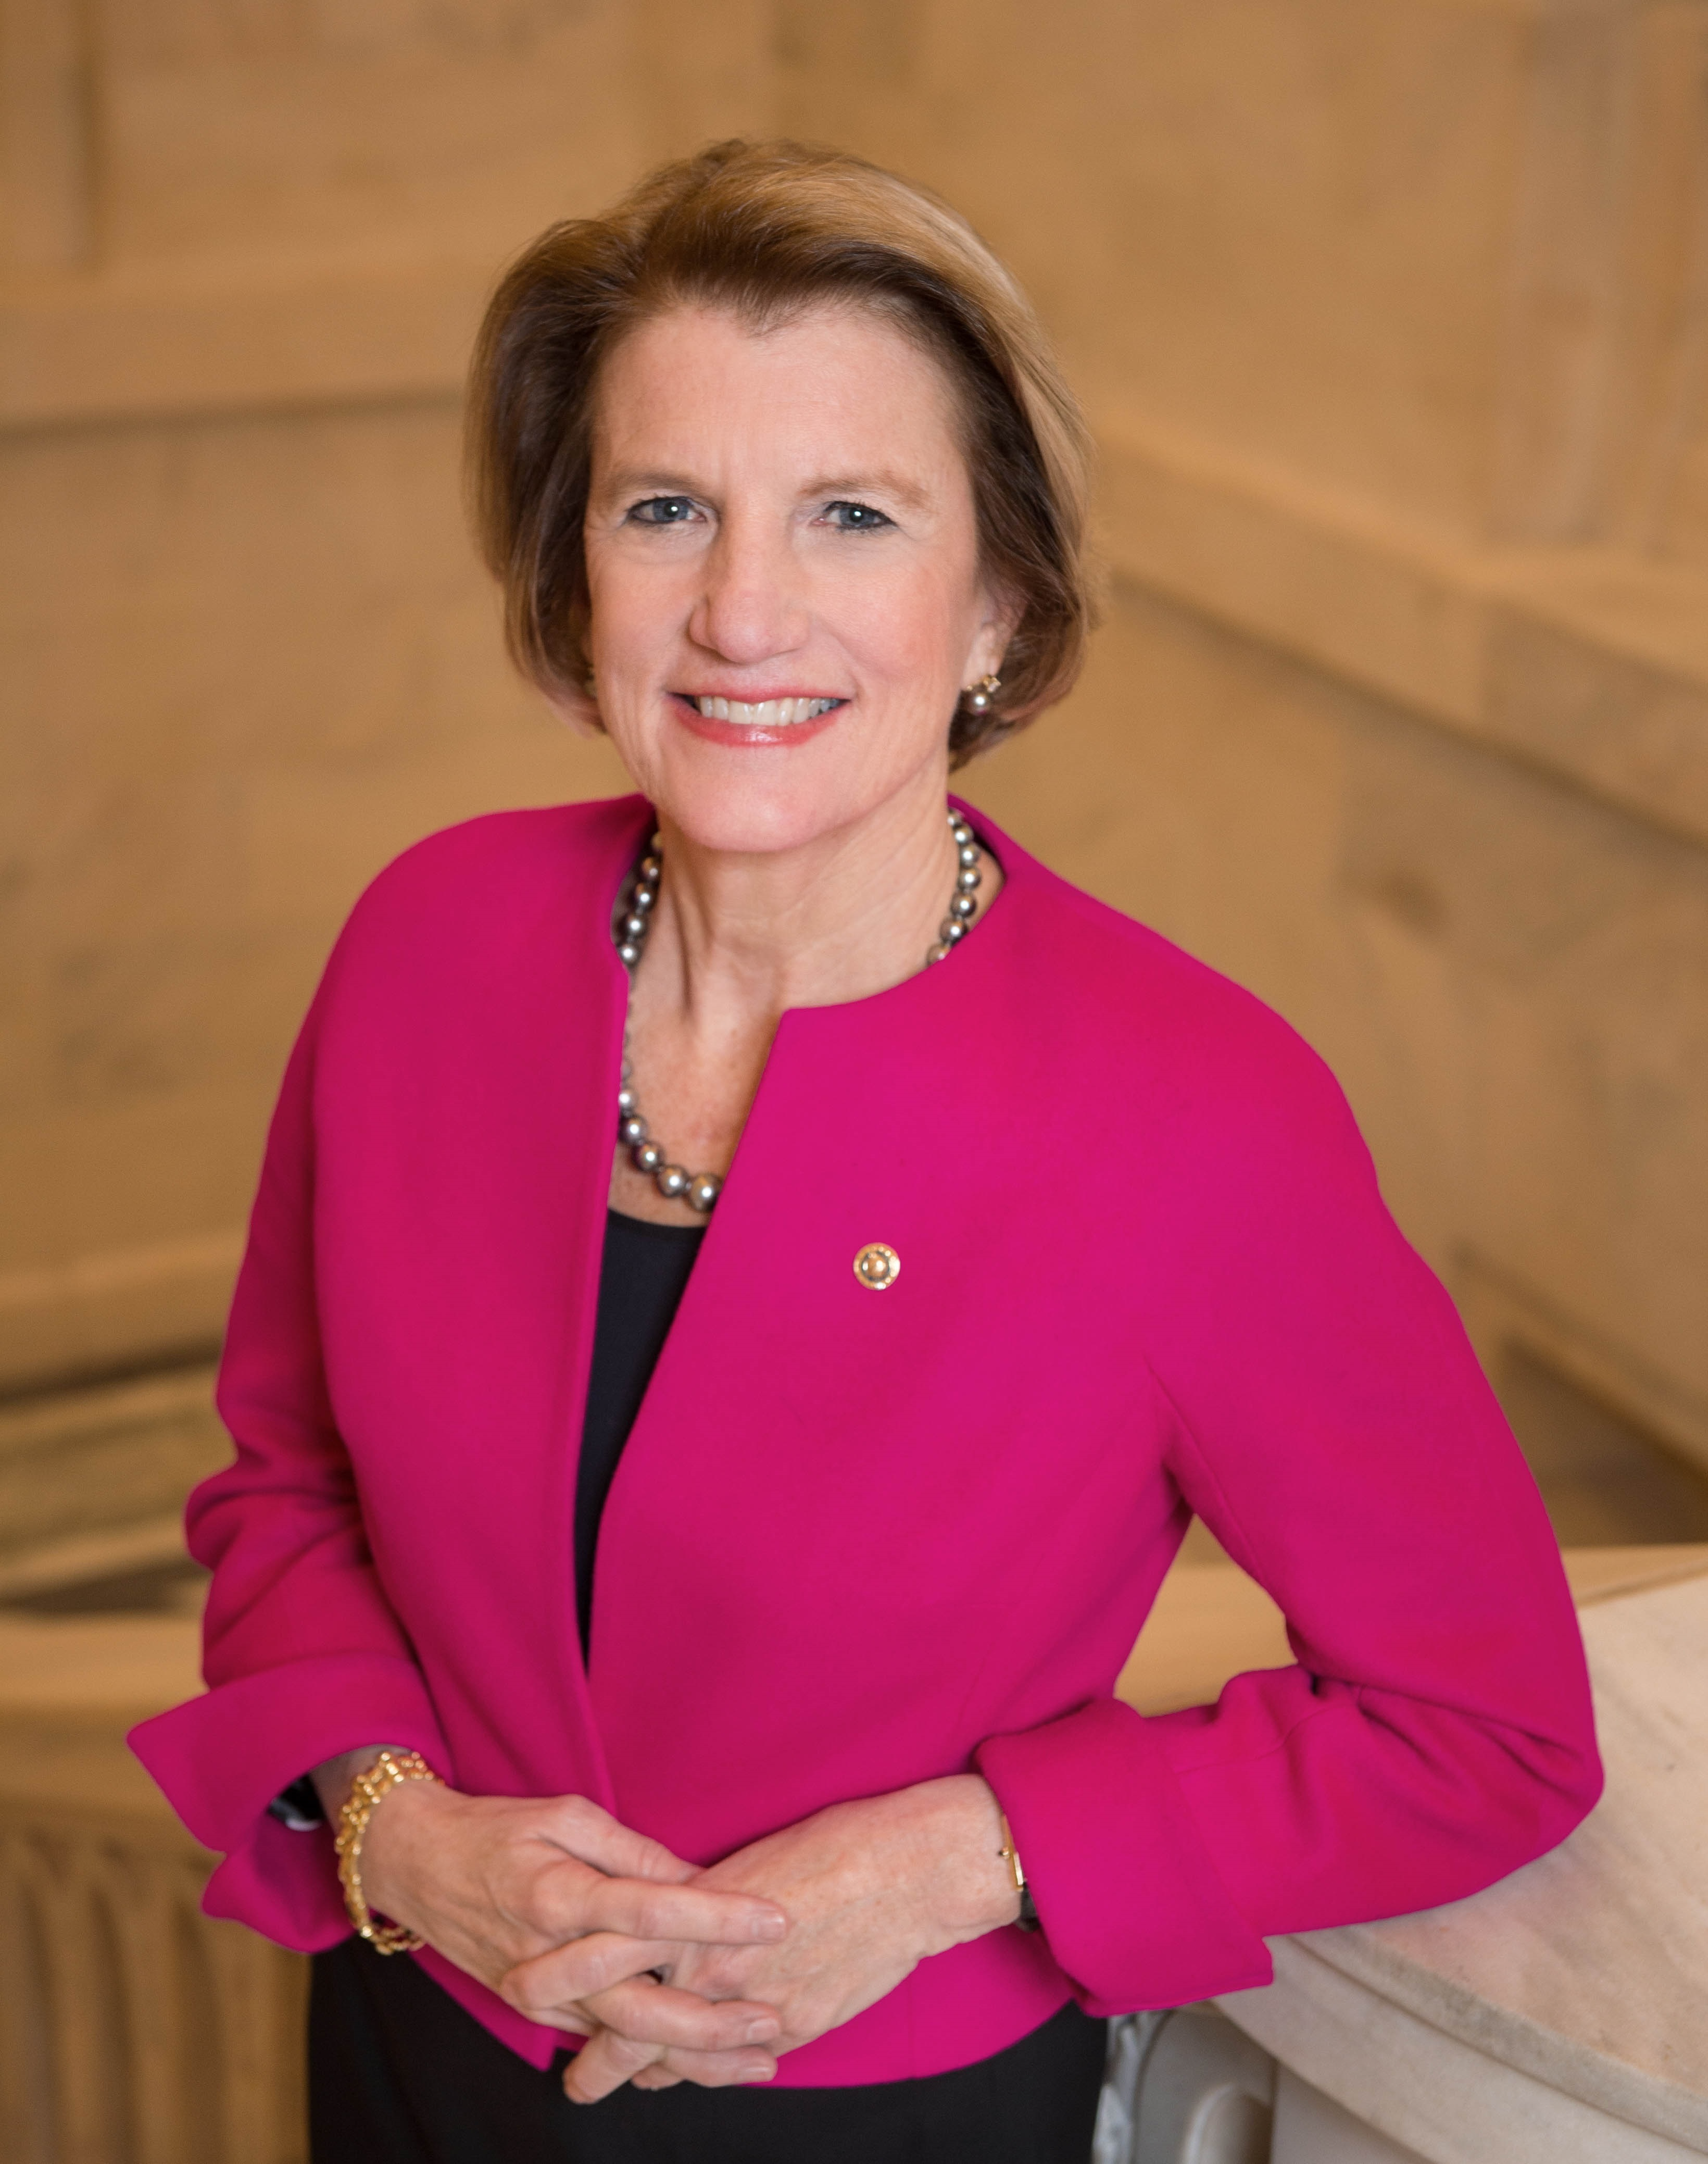 West Virginia: Luncheon with Sen. Shelley Moore Capito